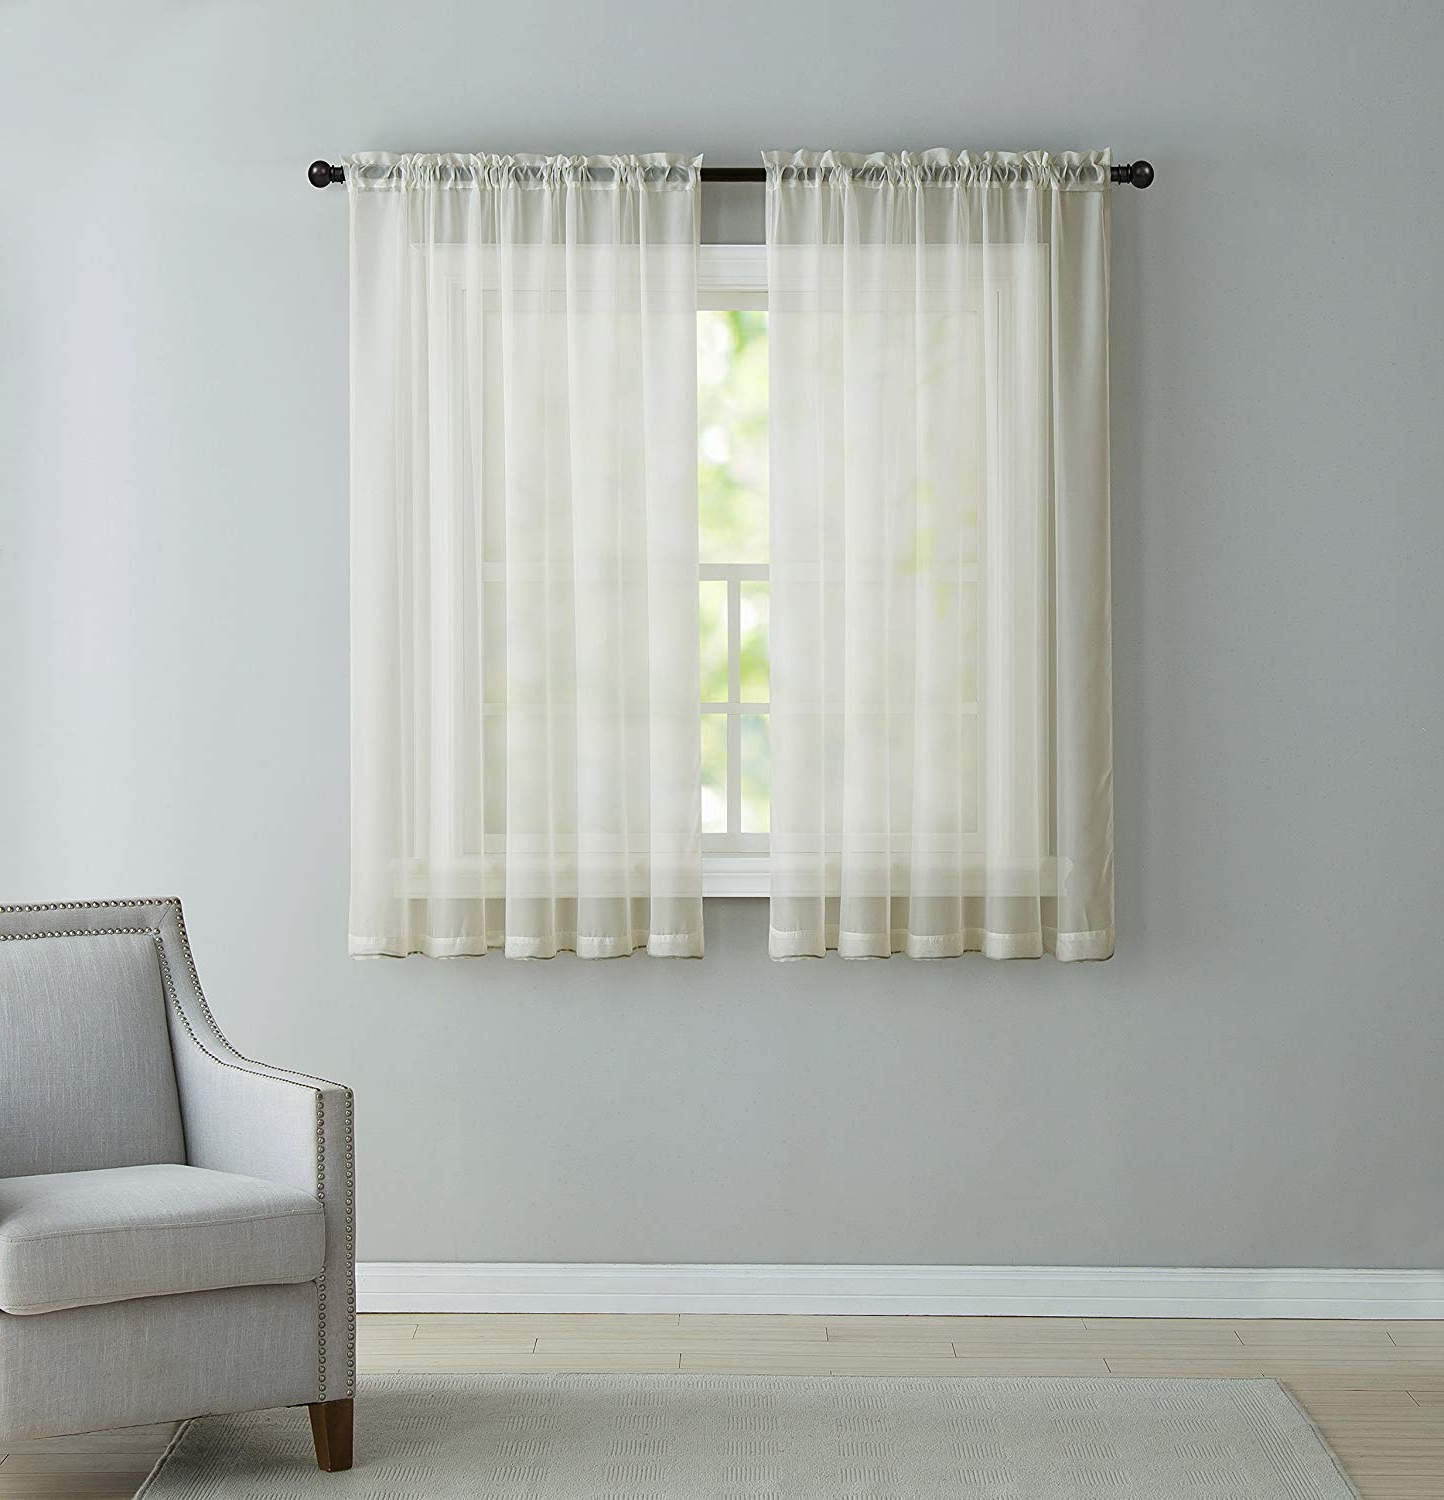 Famous Infinity Sheer Rod Pocket Curtain Panels Regarding Vcny Inf Pnl 5563 In Iv Infinity Sheer Panel, 5563 Inch, Ivory (View 7 of 20)